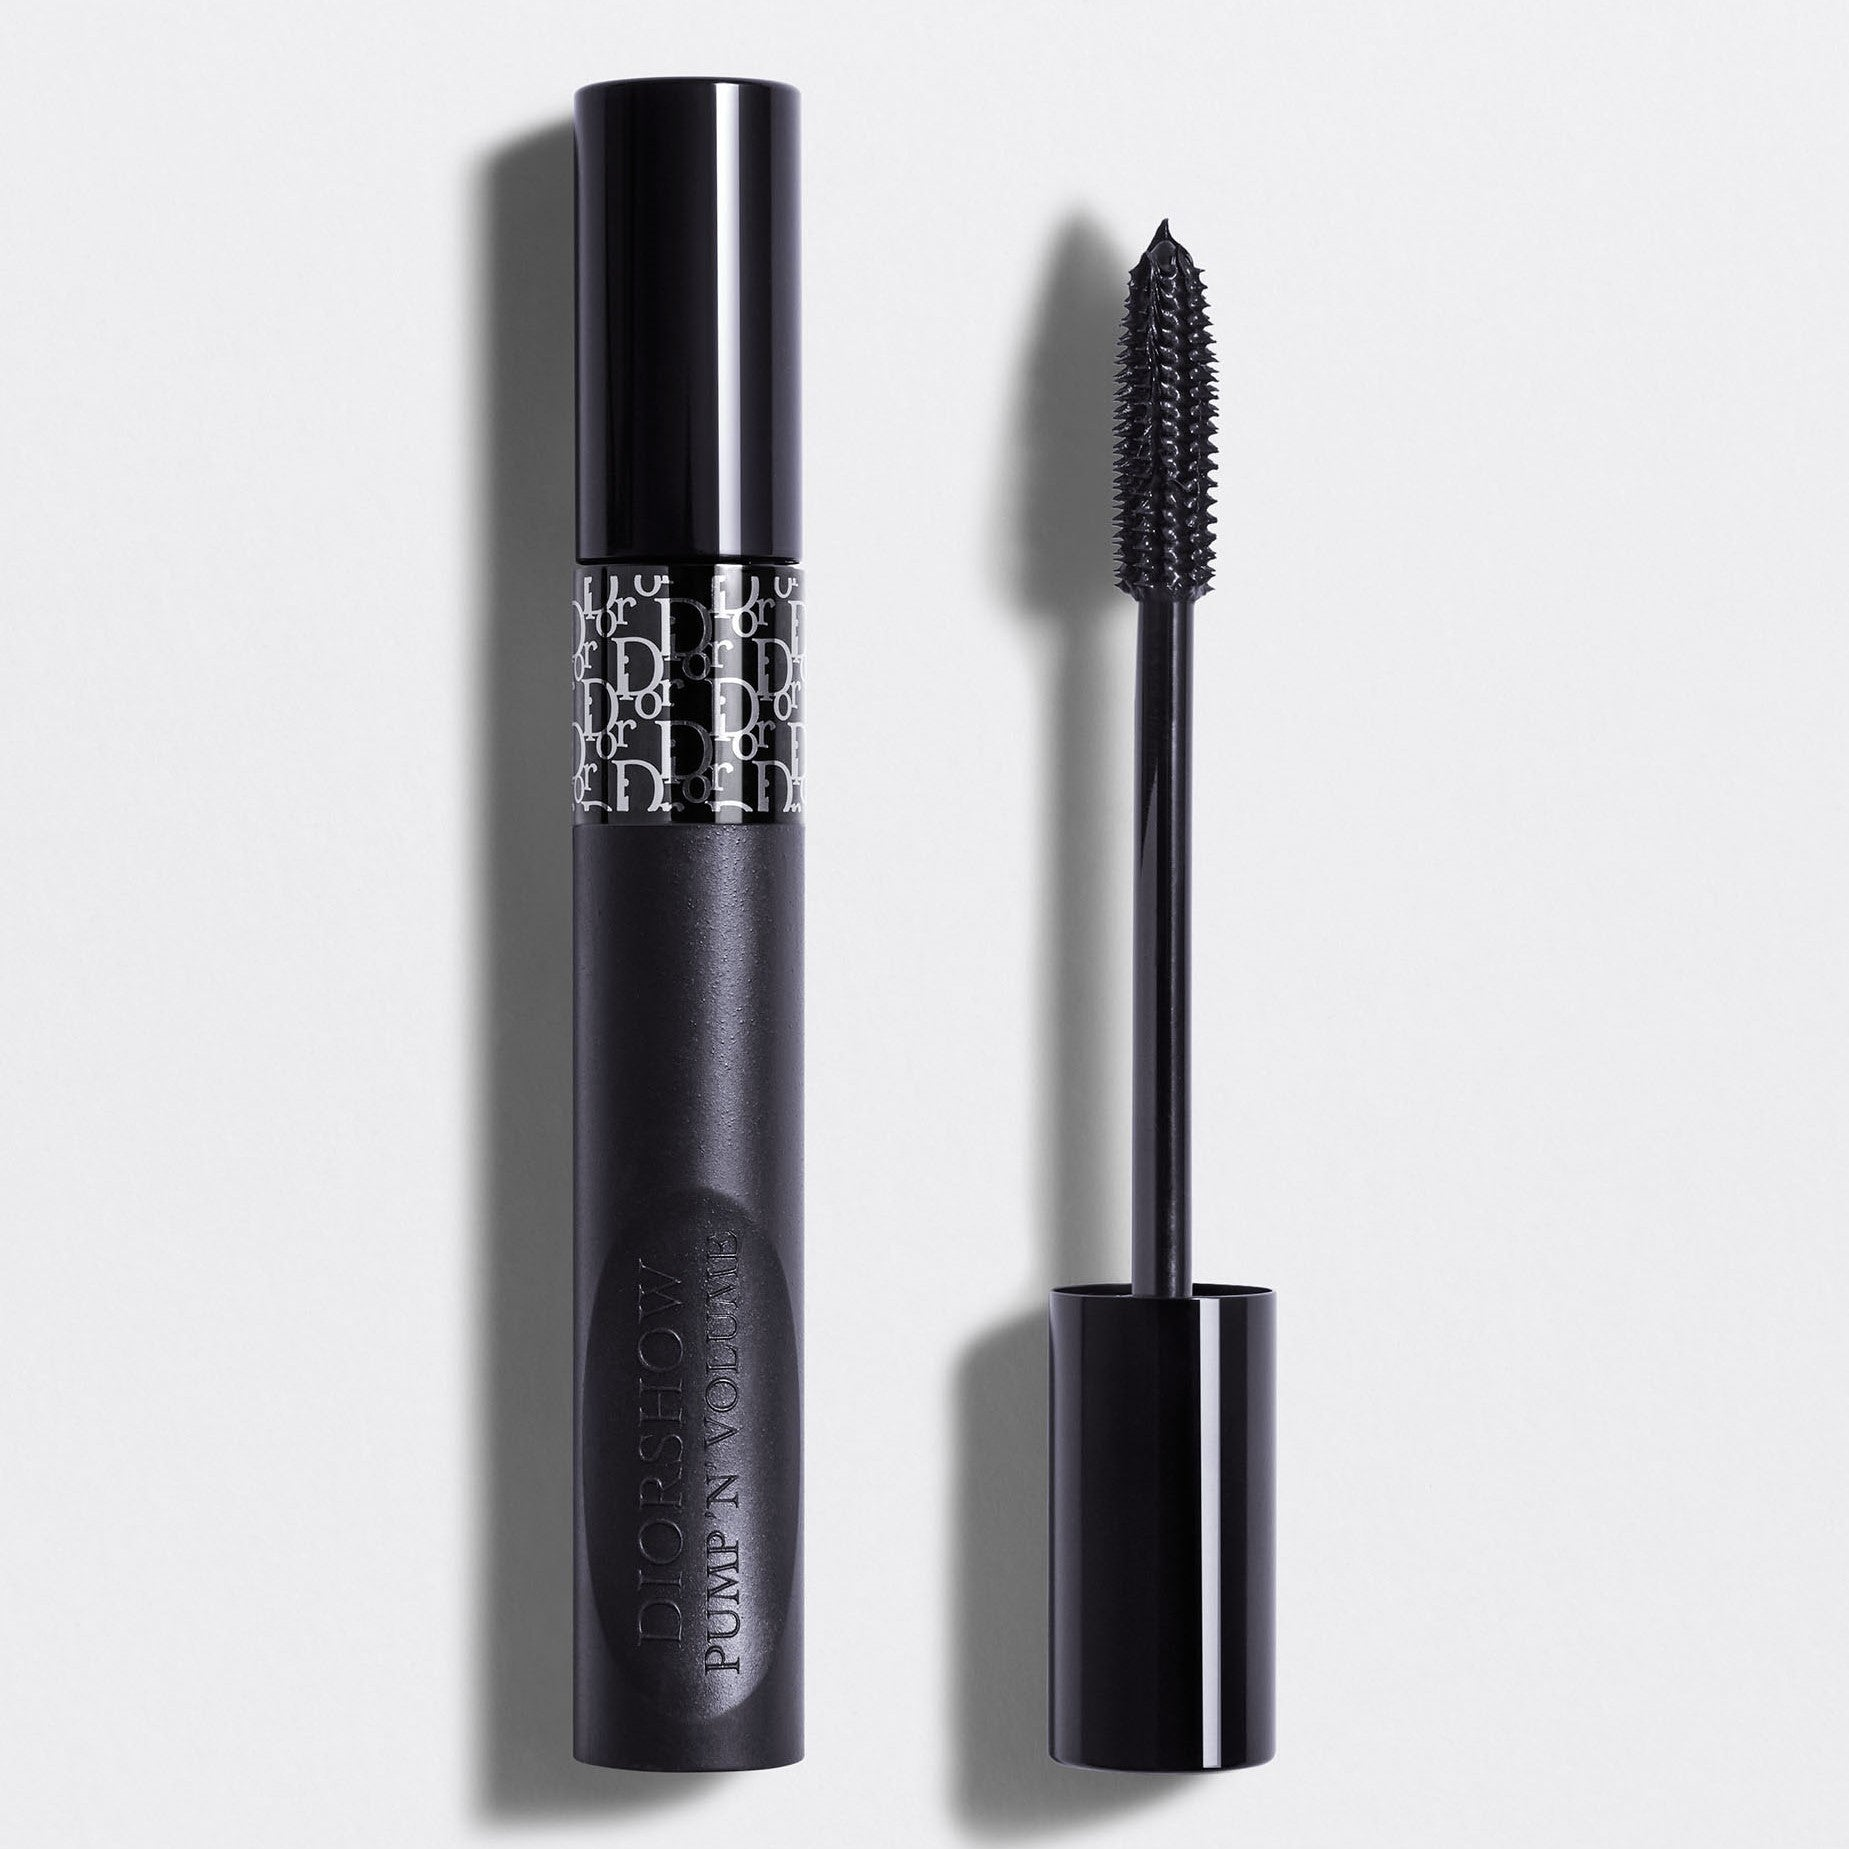 Diorshow Pump 'N' Volume HD | Squeezable Mascara Instant XXL Volume - Lash-Multiplying Effect